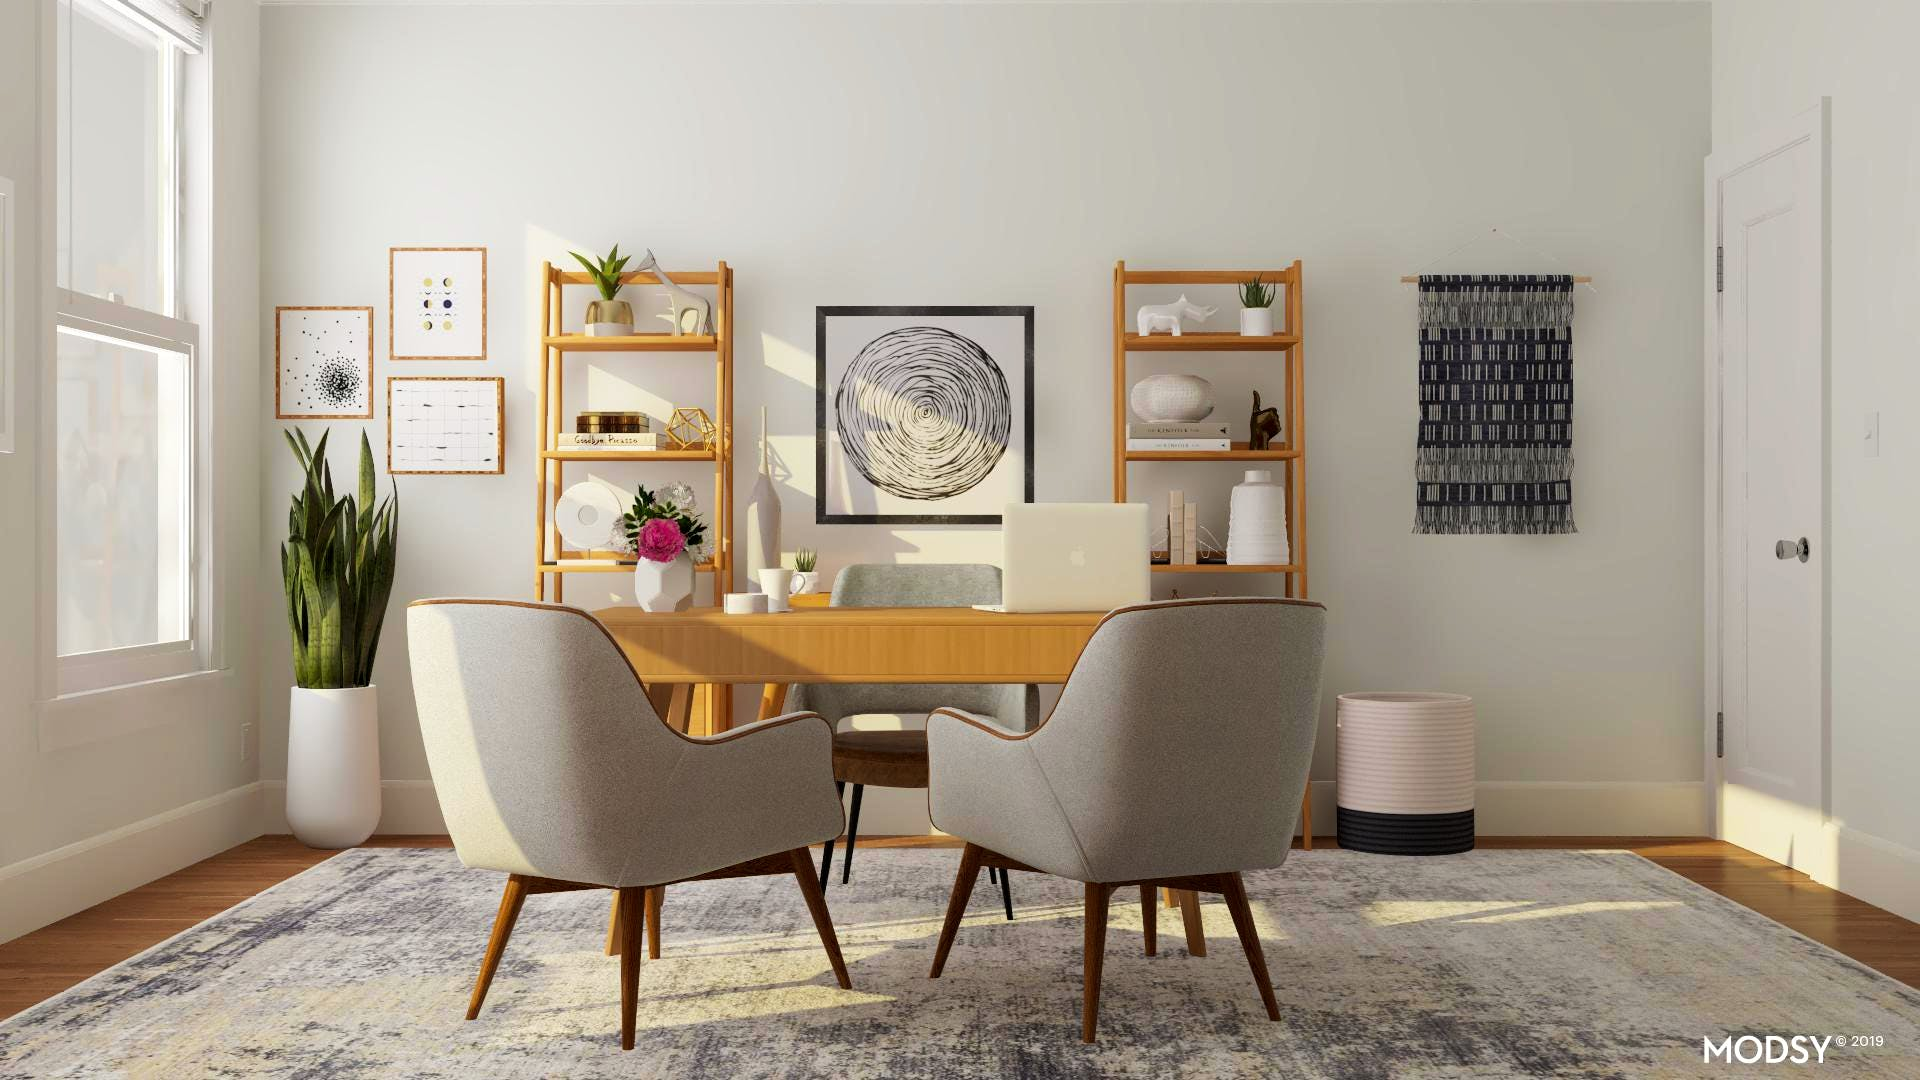 Classic Light And Airy Mid-Century Modern Office